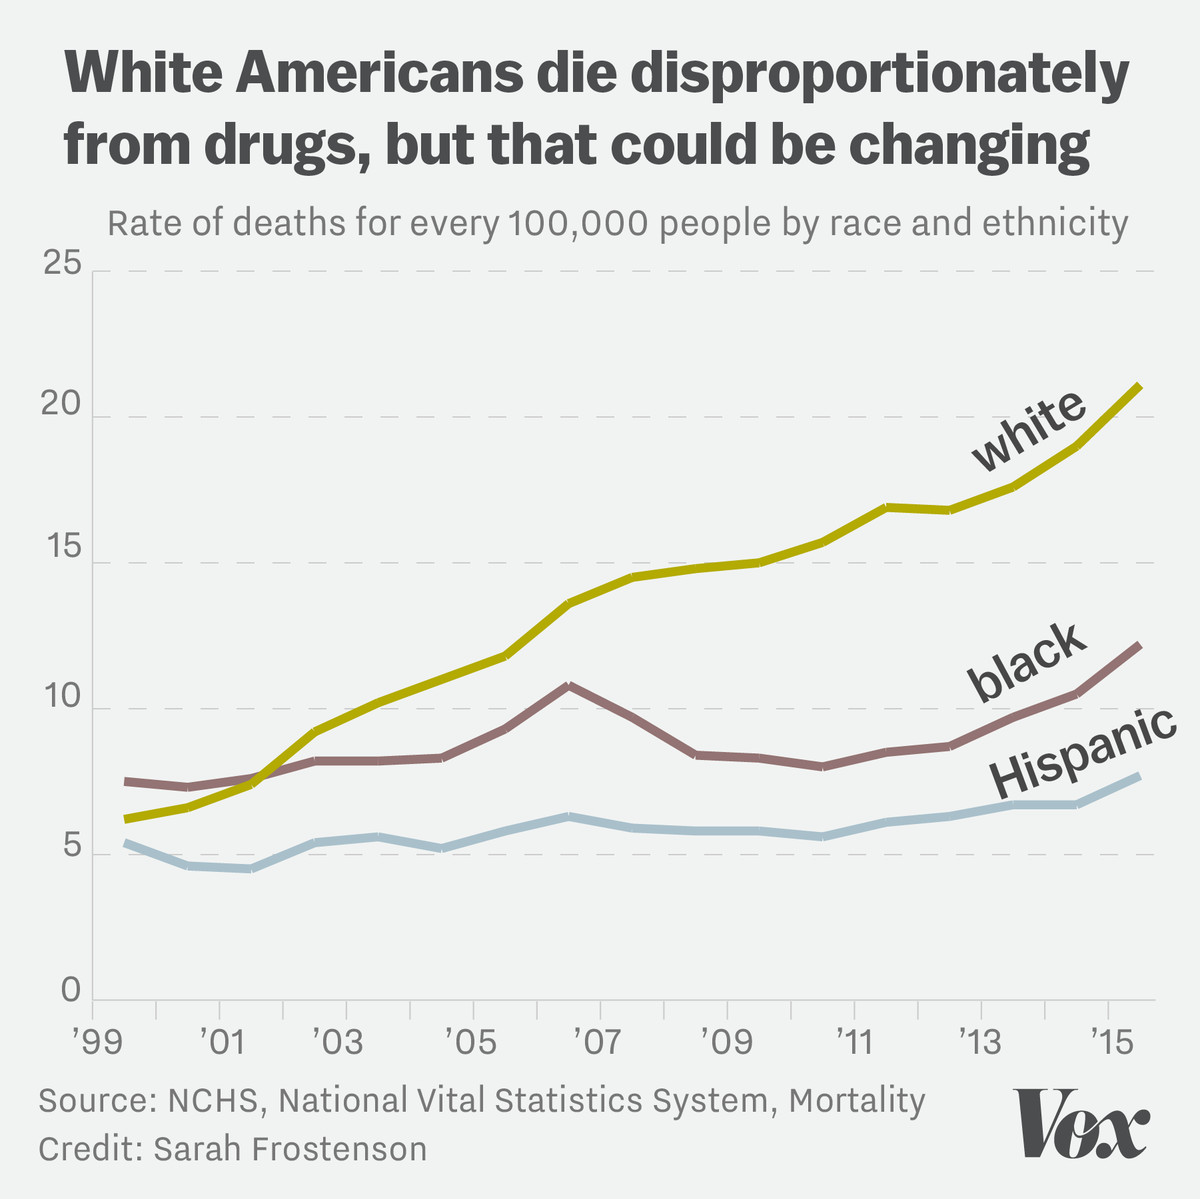 Chart showing that white Americans have disproportionately died from drugs in the last 16 years, but that might be changing given spikes in 2014 for black and Hispanic Americans